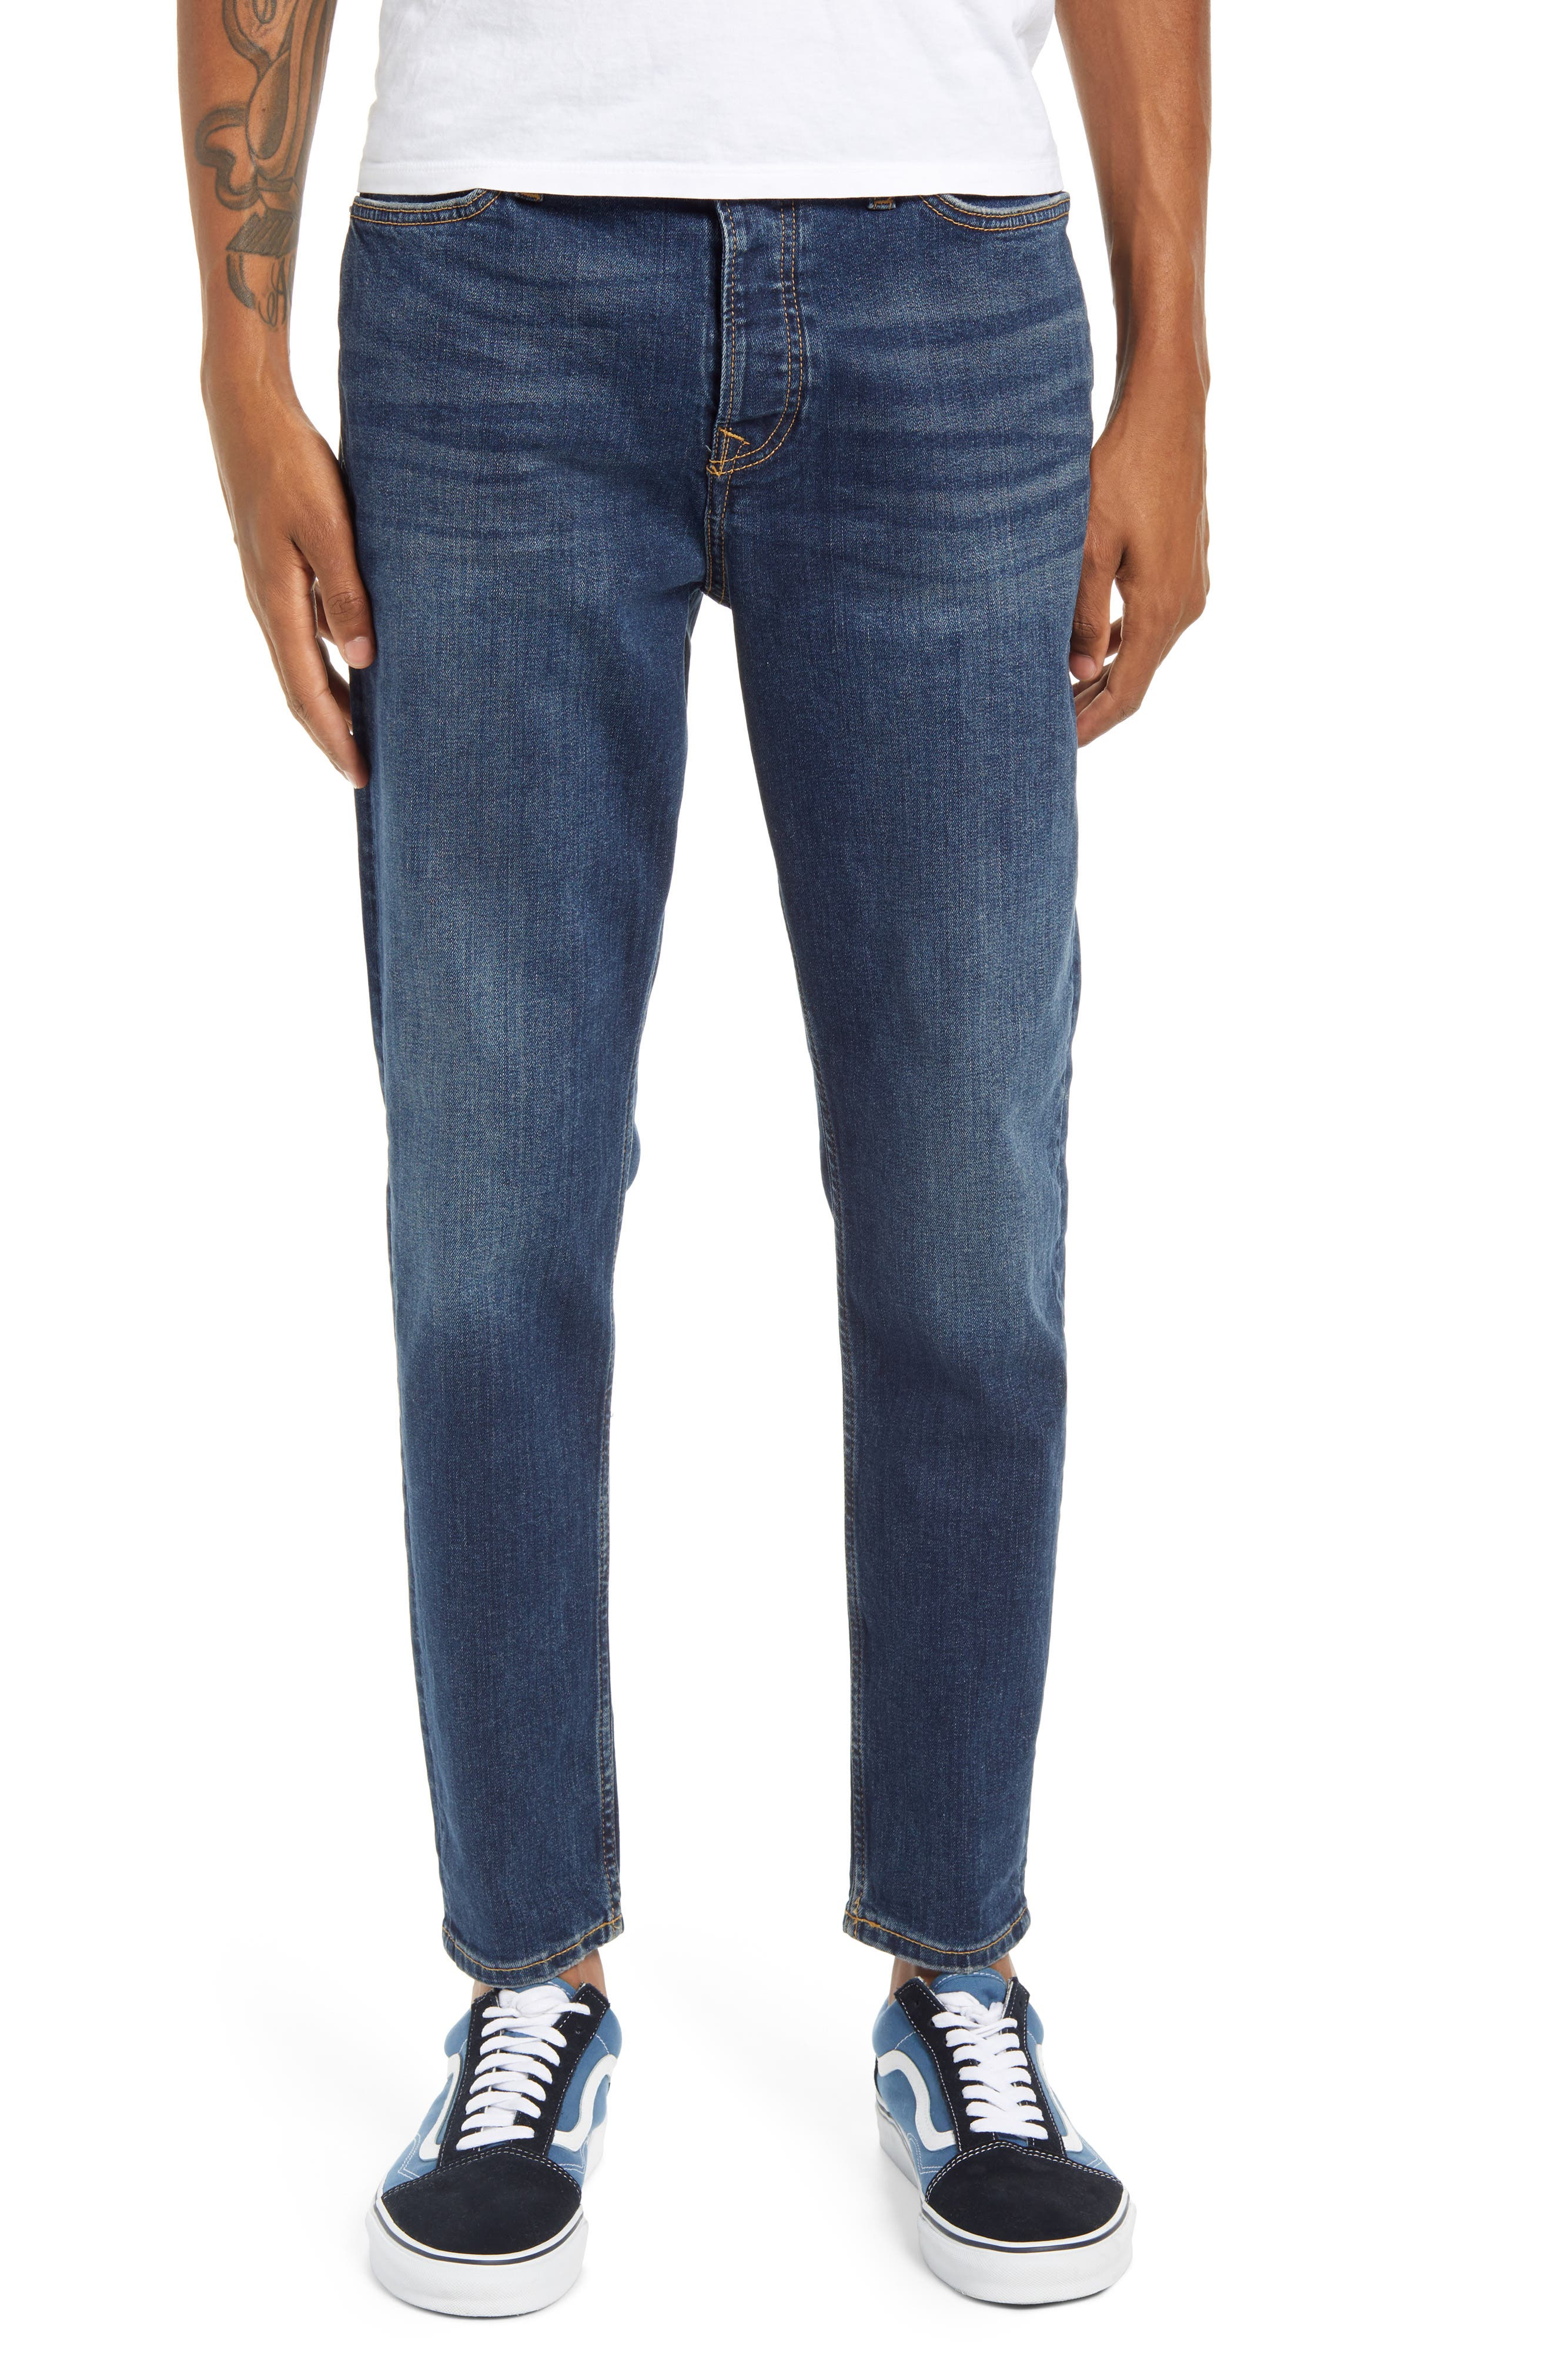 Tapered, straight legs define these faded blue jeans that are calling out for the weekend. Style Name: Topman Carrot Tapered Jeans. Style Number: 6094513. Available in stores.